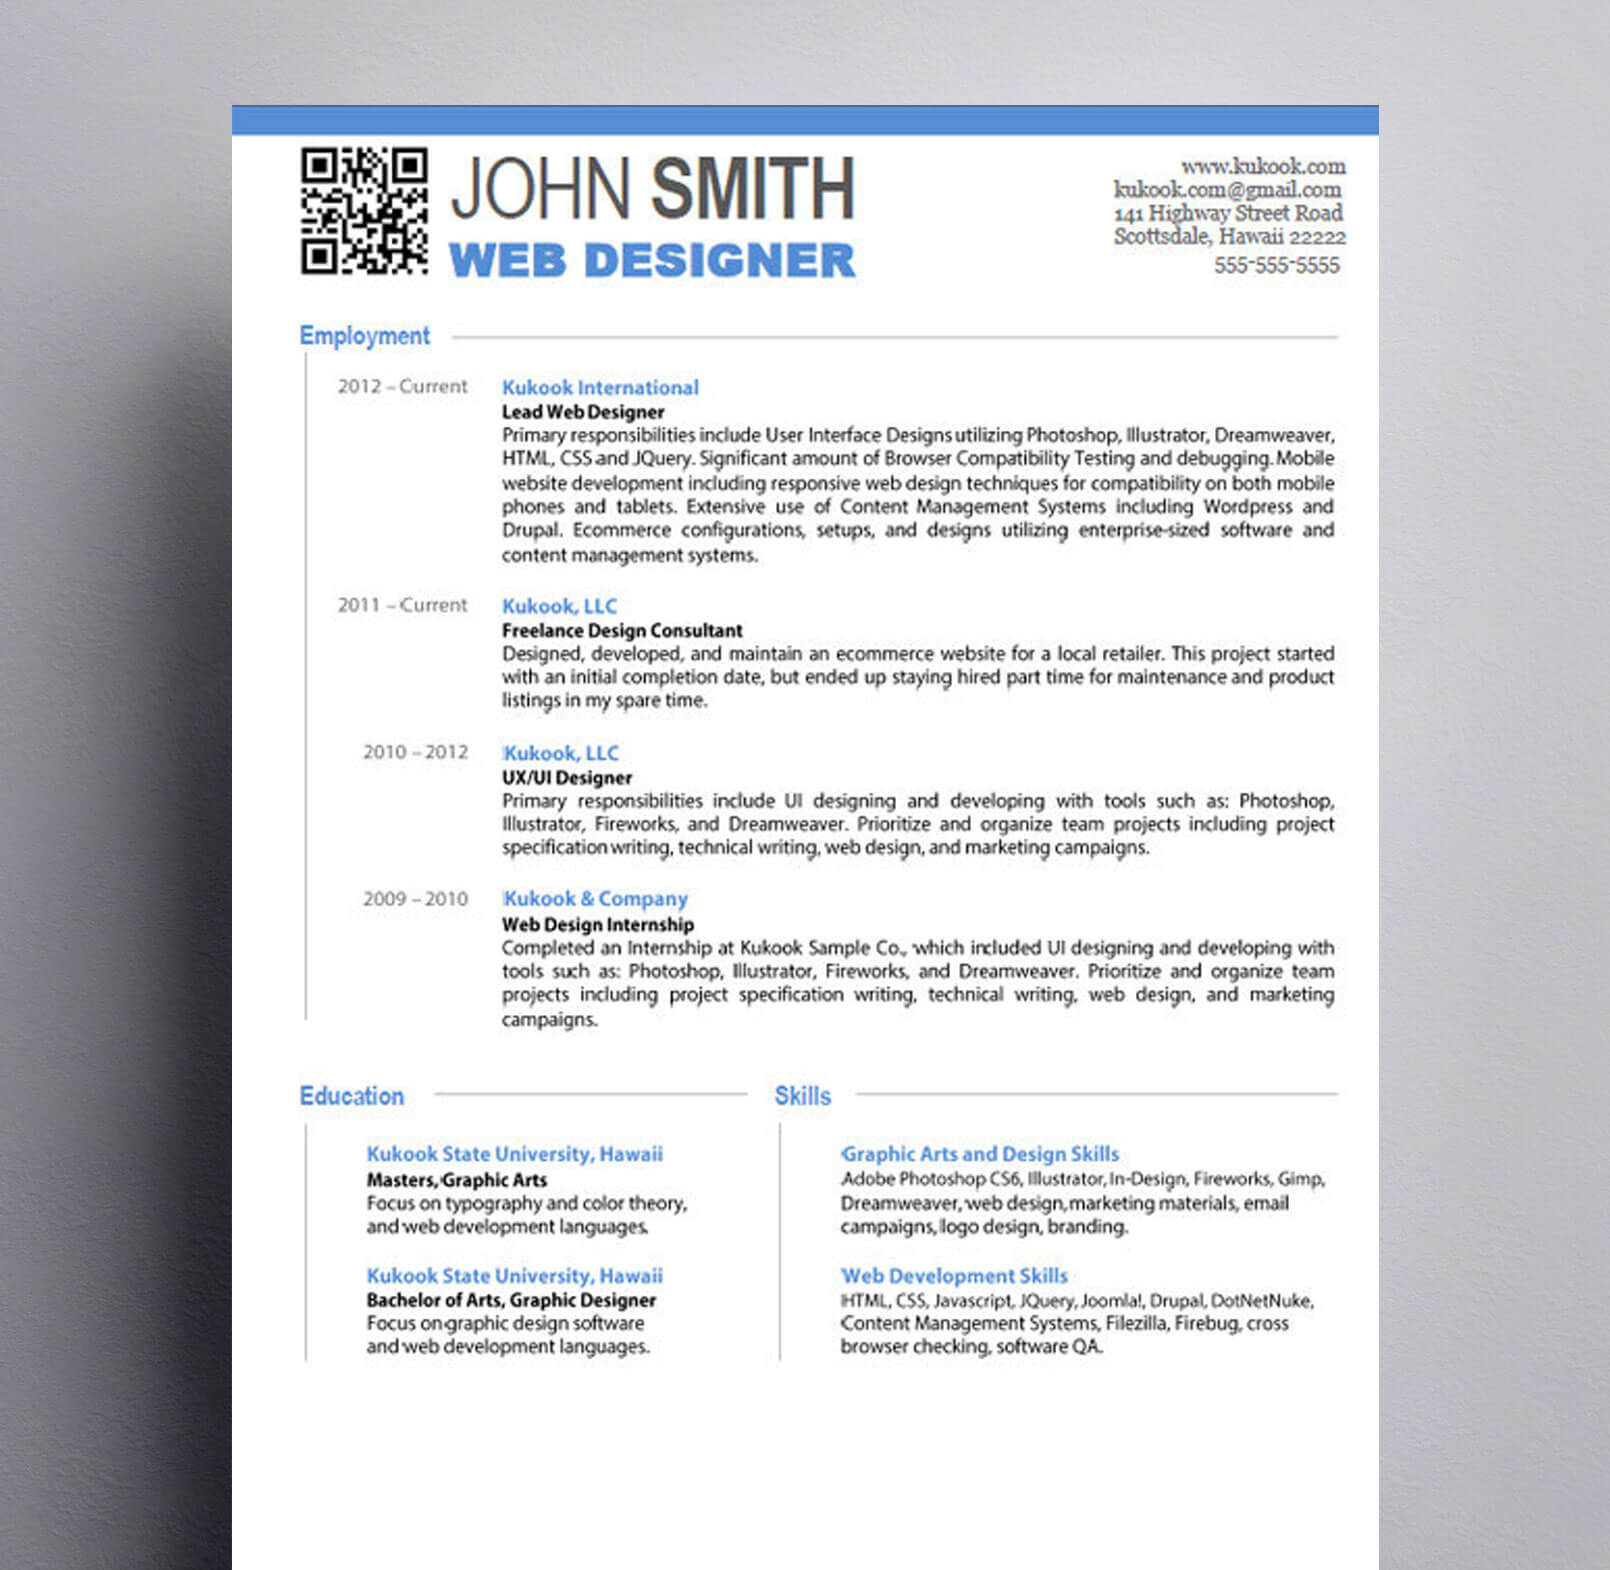 resume for graphic designer - Graphic Designers Resumes